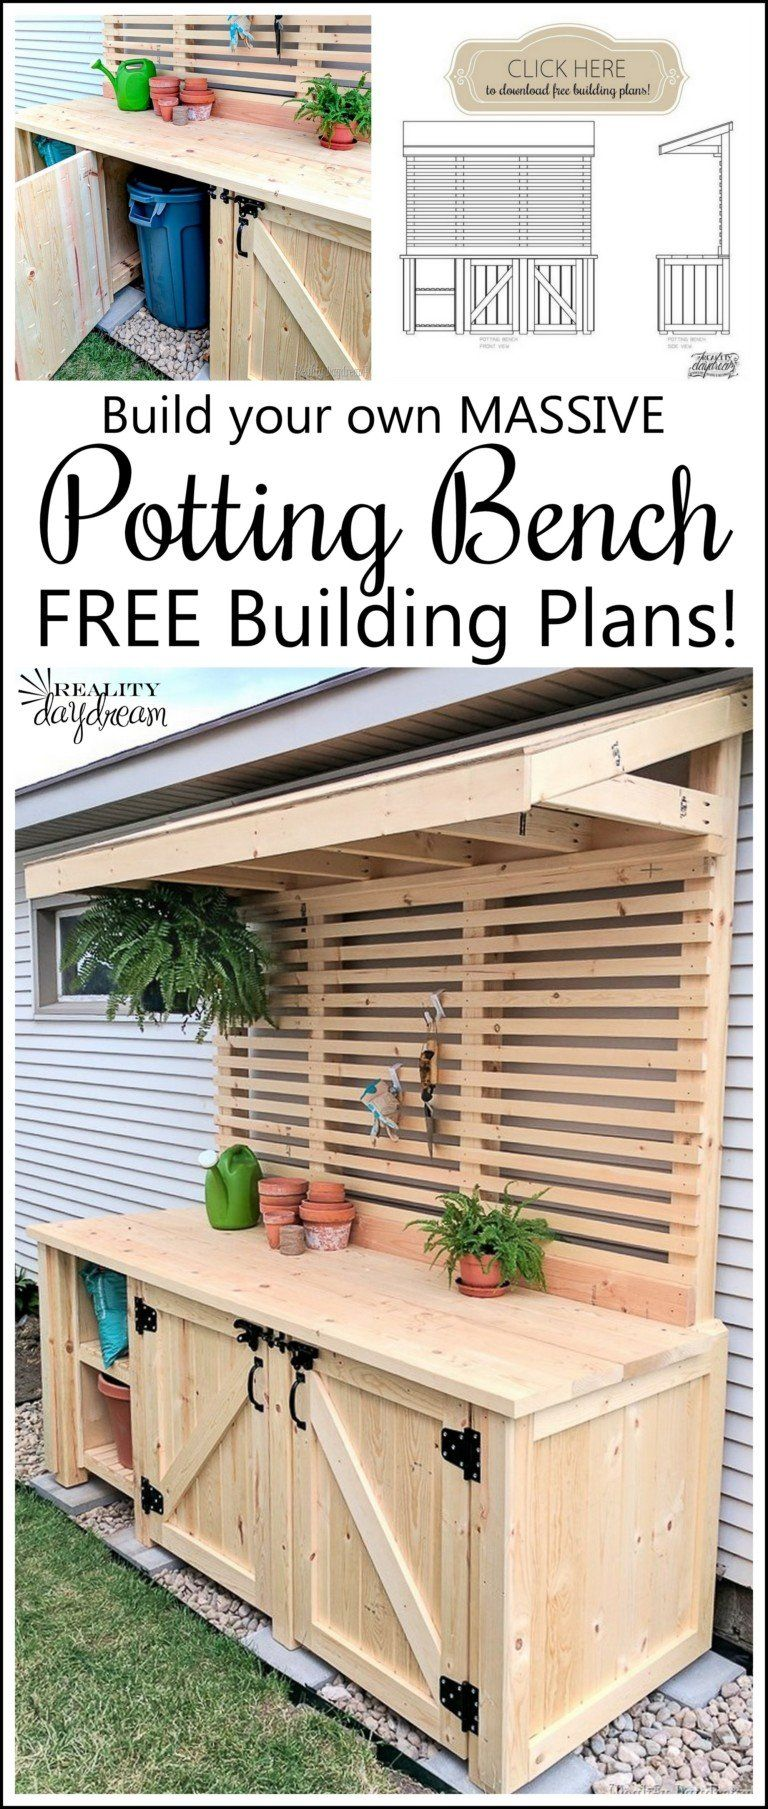 Potting Bench with Hidden Garbage Can Enclosure - Reality Daydream